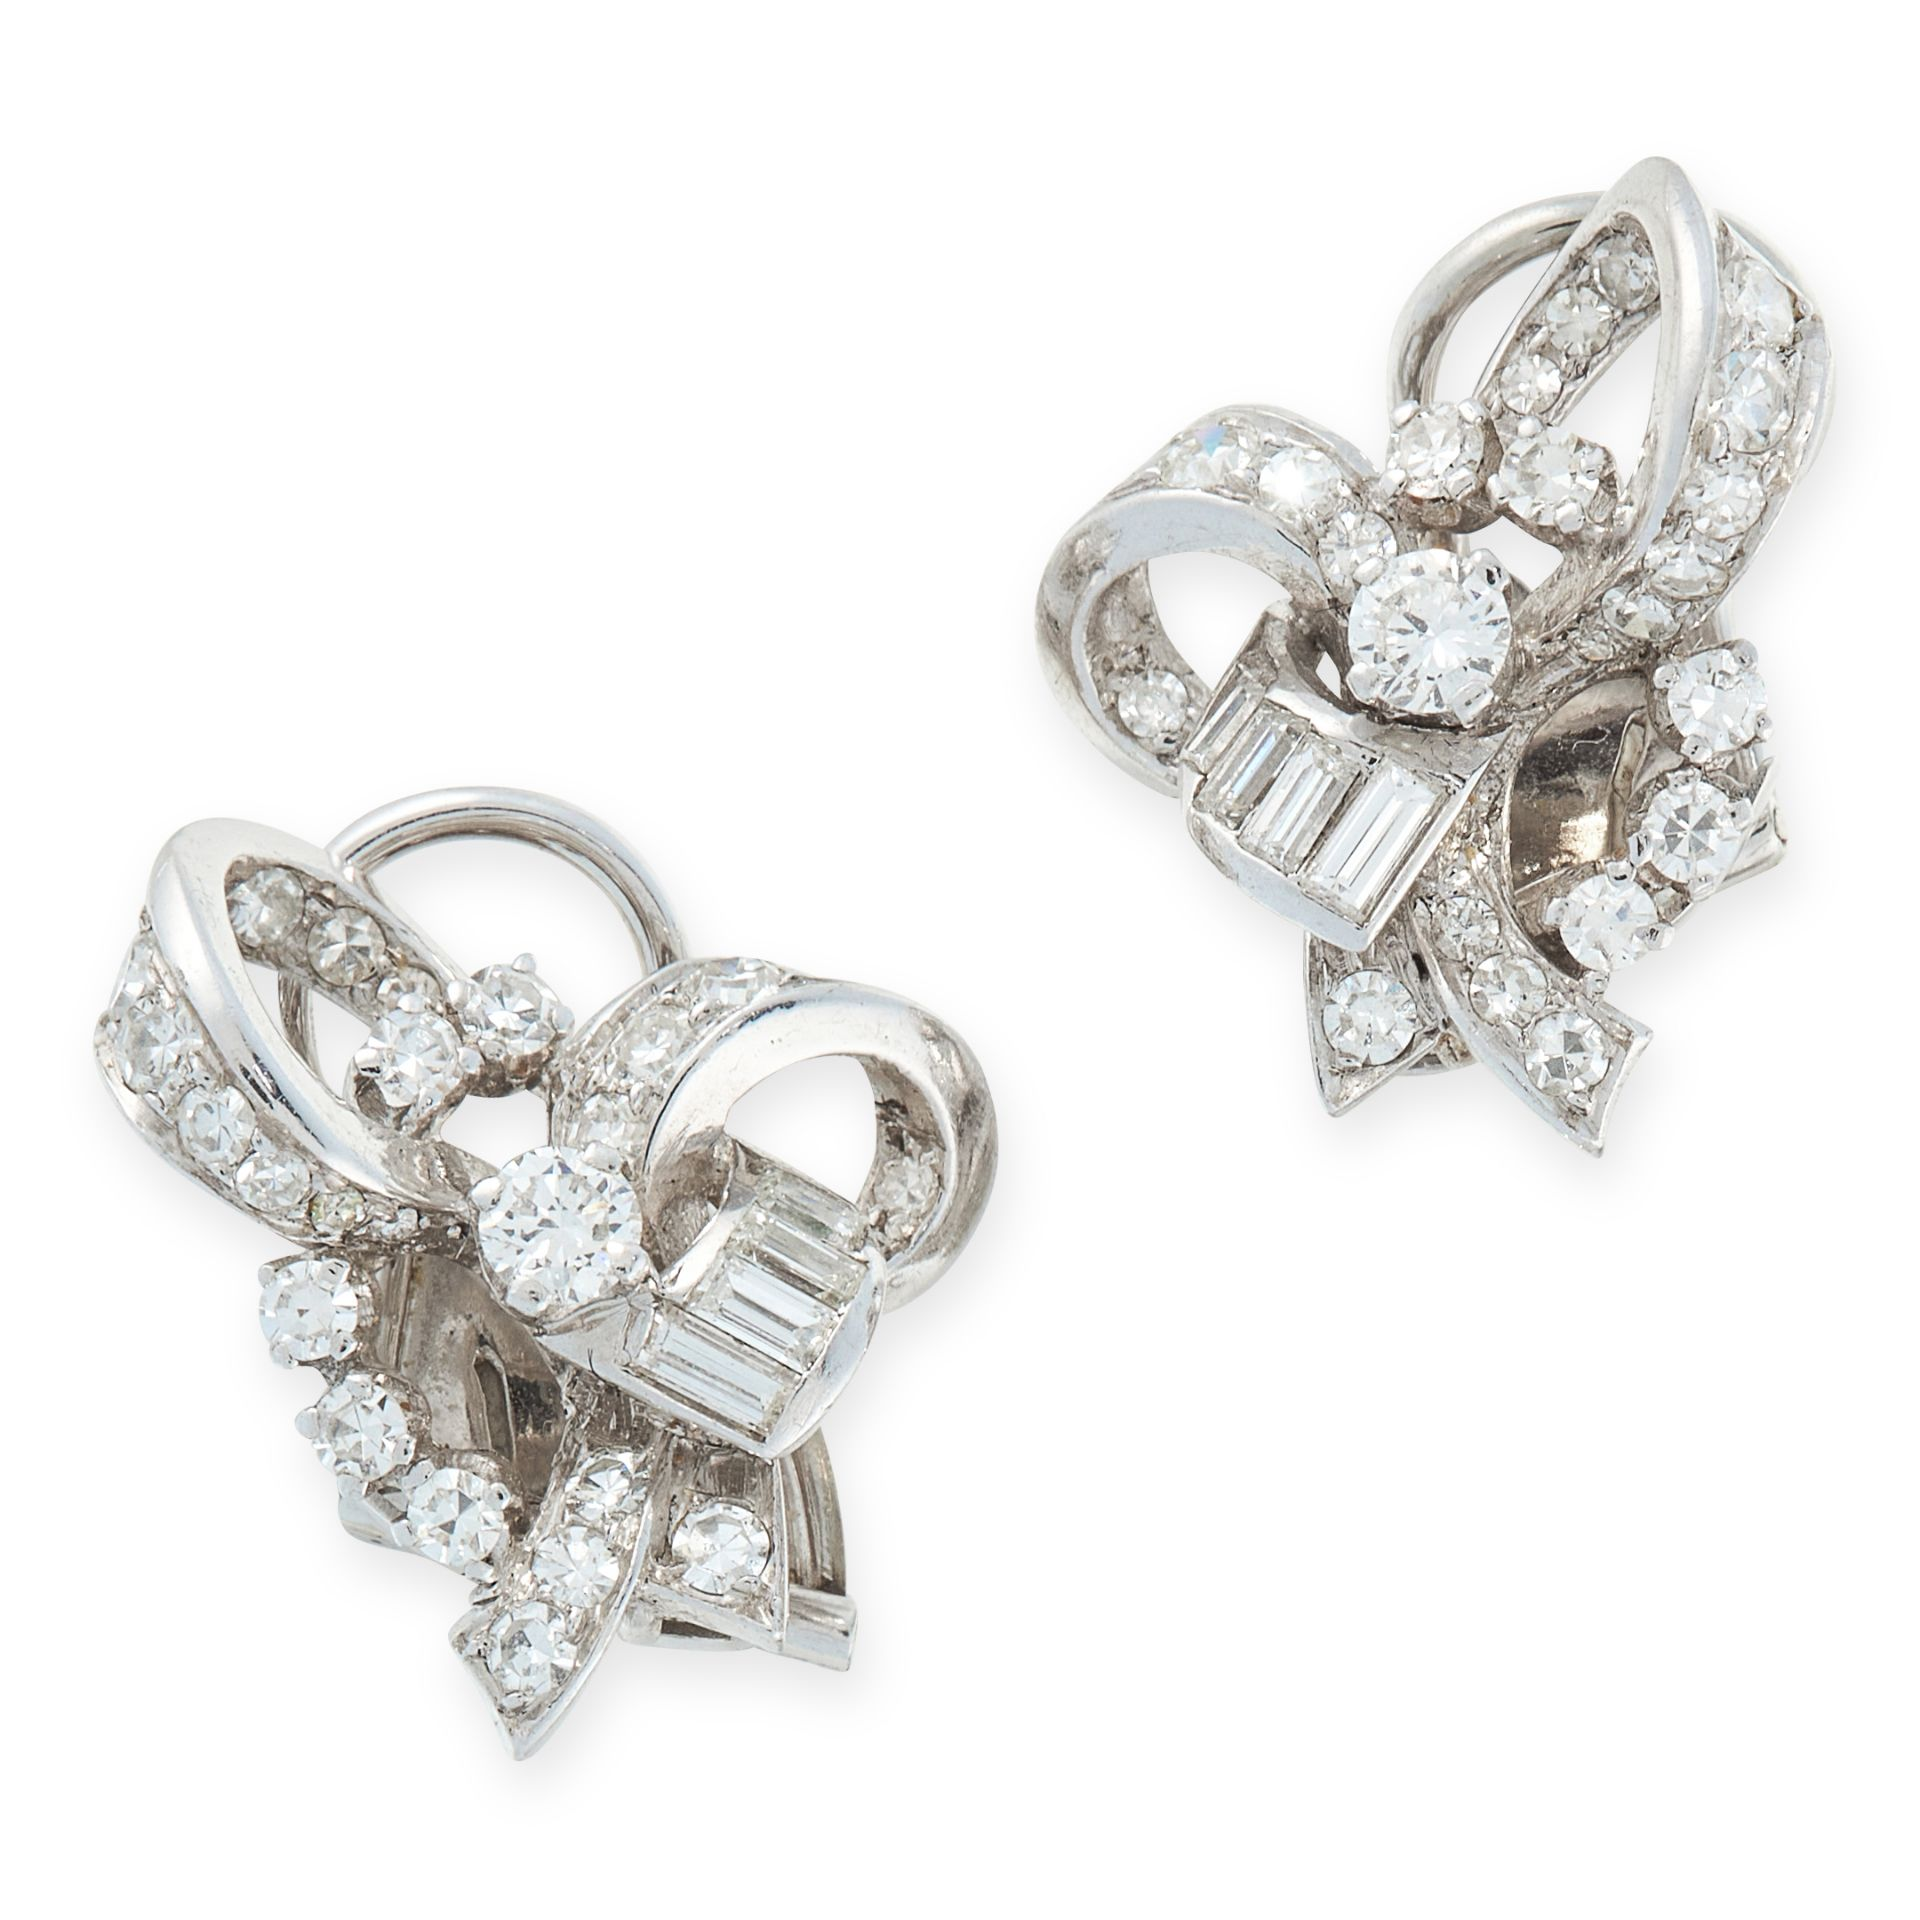 A PAIR OF VINTAGE DIAMOND CLIP EARRINGS in 18ct white gold, each deigned as a ribbon tied in a